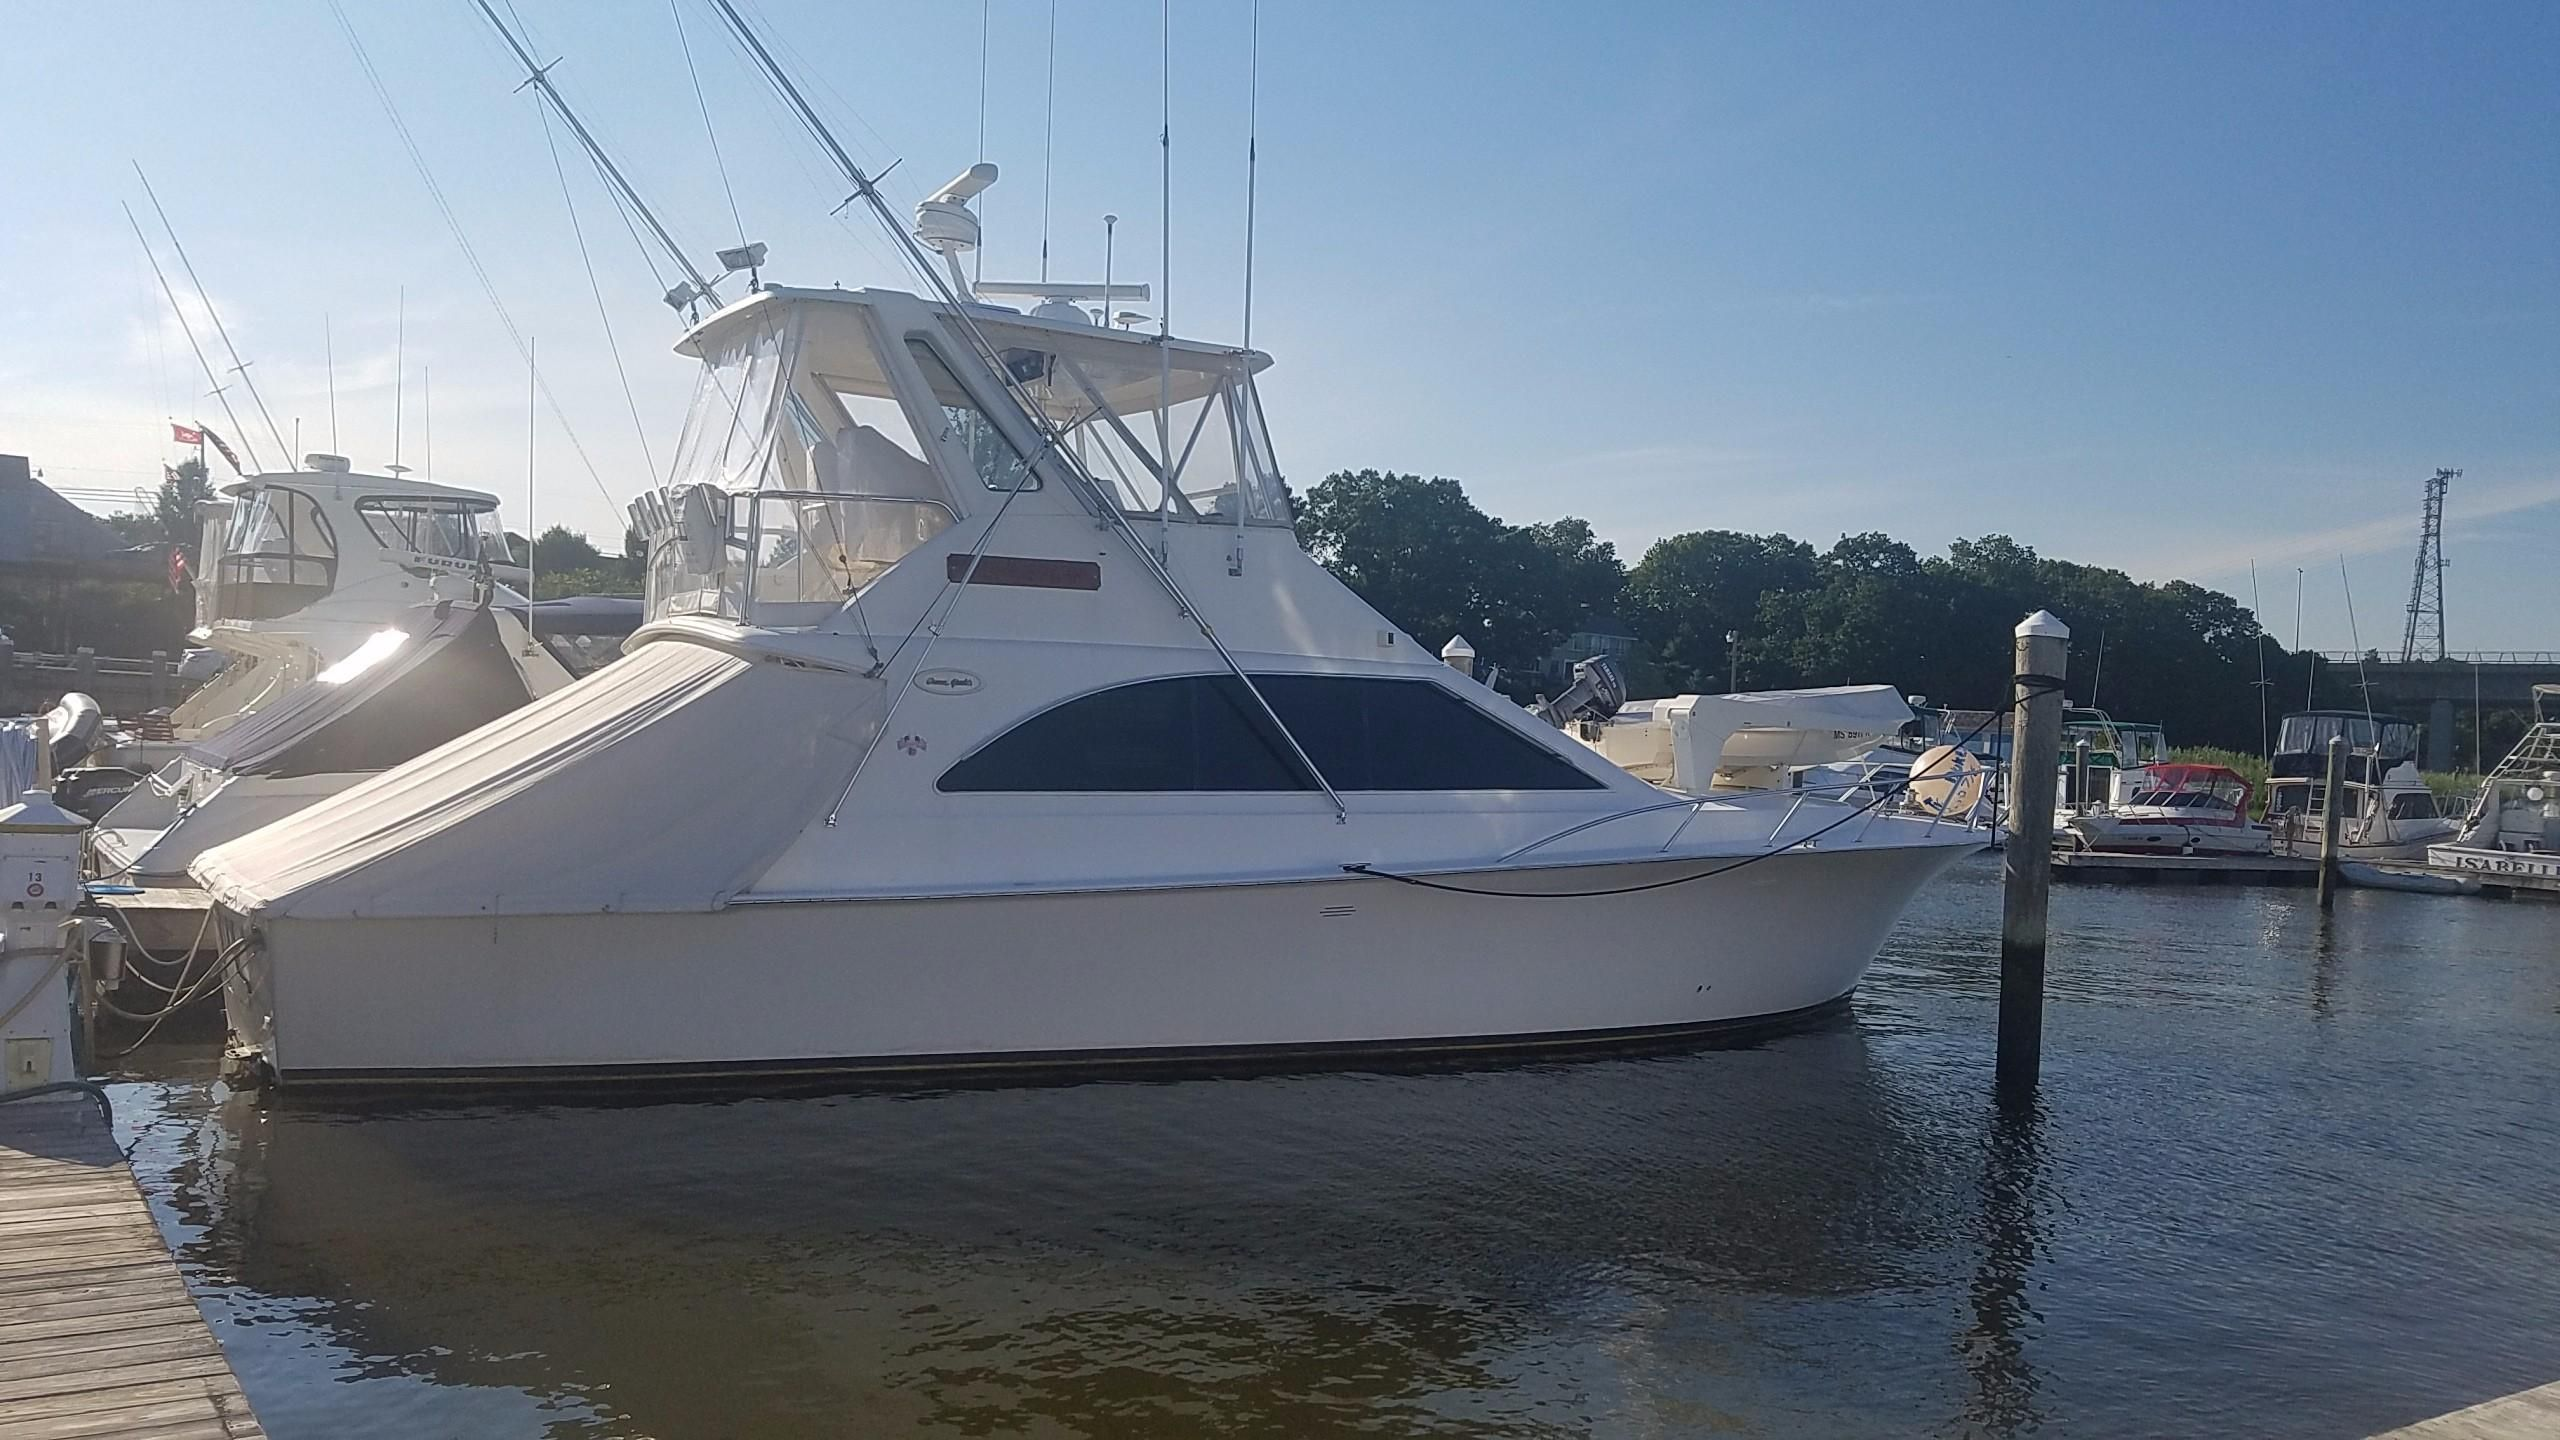 1999 ocean yachts 48 super sport power boat for sale www for Ocean yachts 48 motor yacht for sale